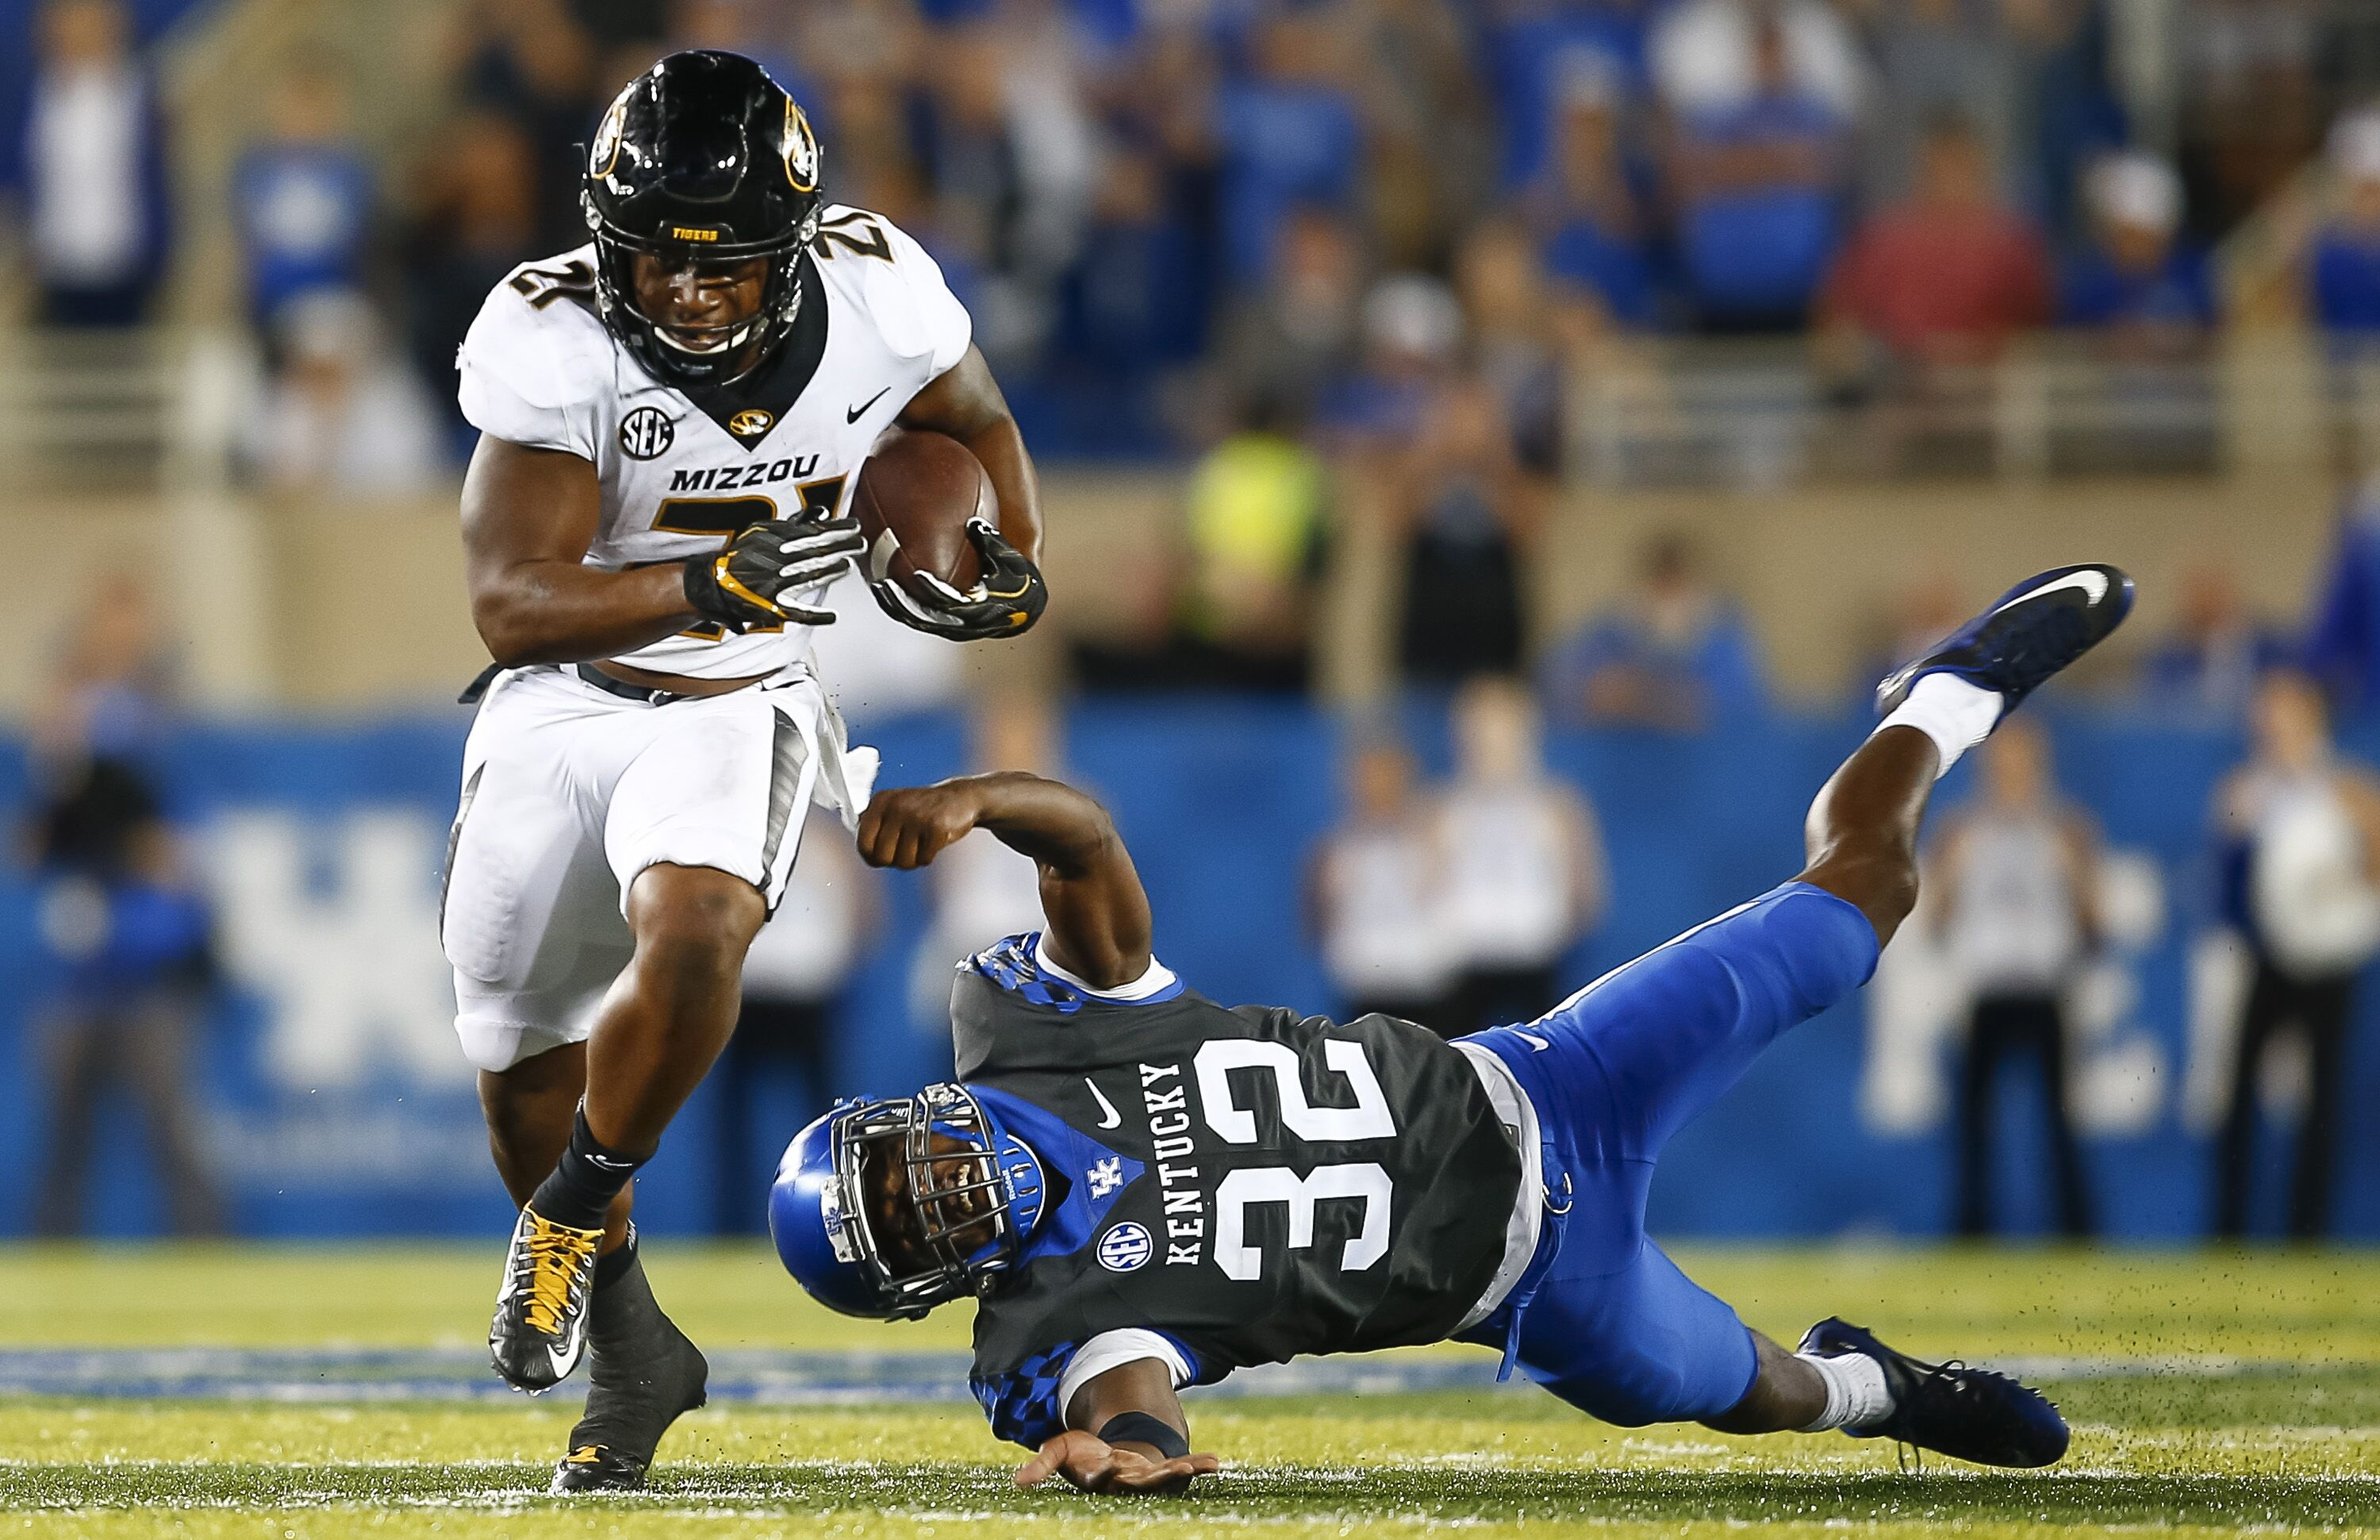 mizzou football lost a winnable game on saturday to the kentucky wildcats by a score of 40 34 what was good what was bad and what was ugly in this one